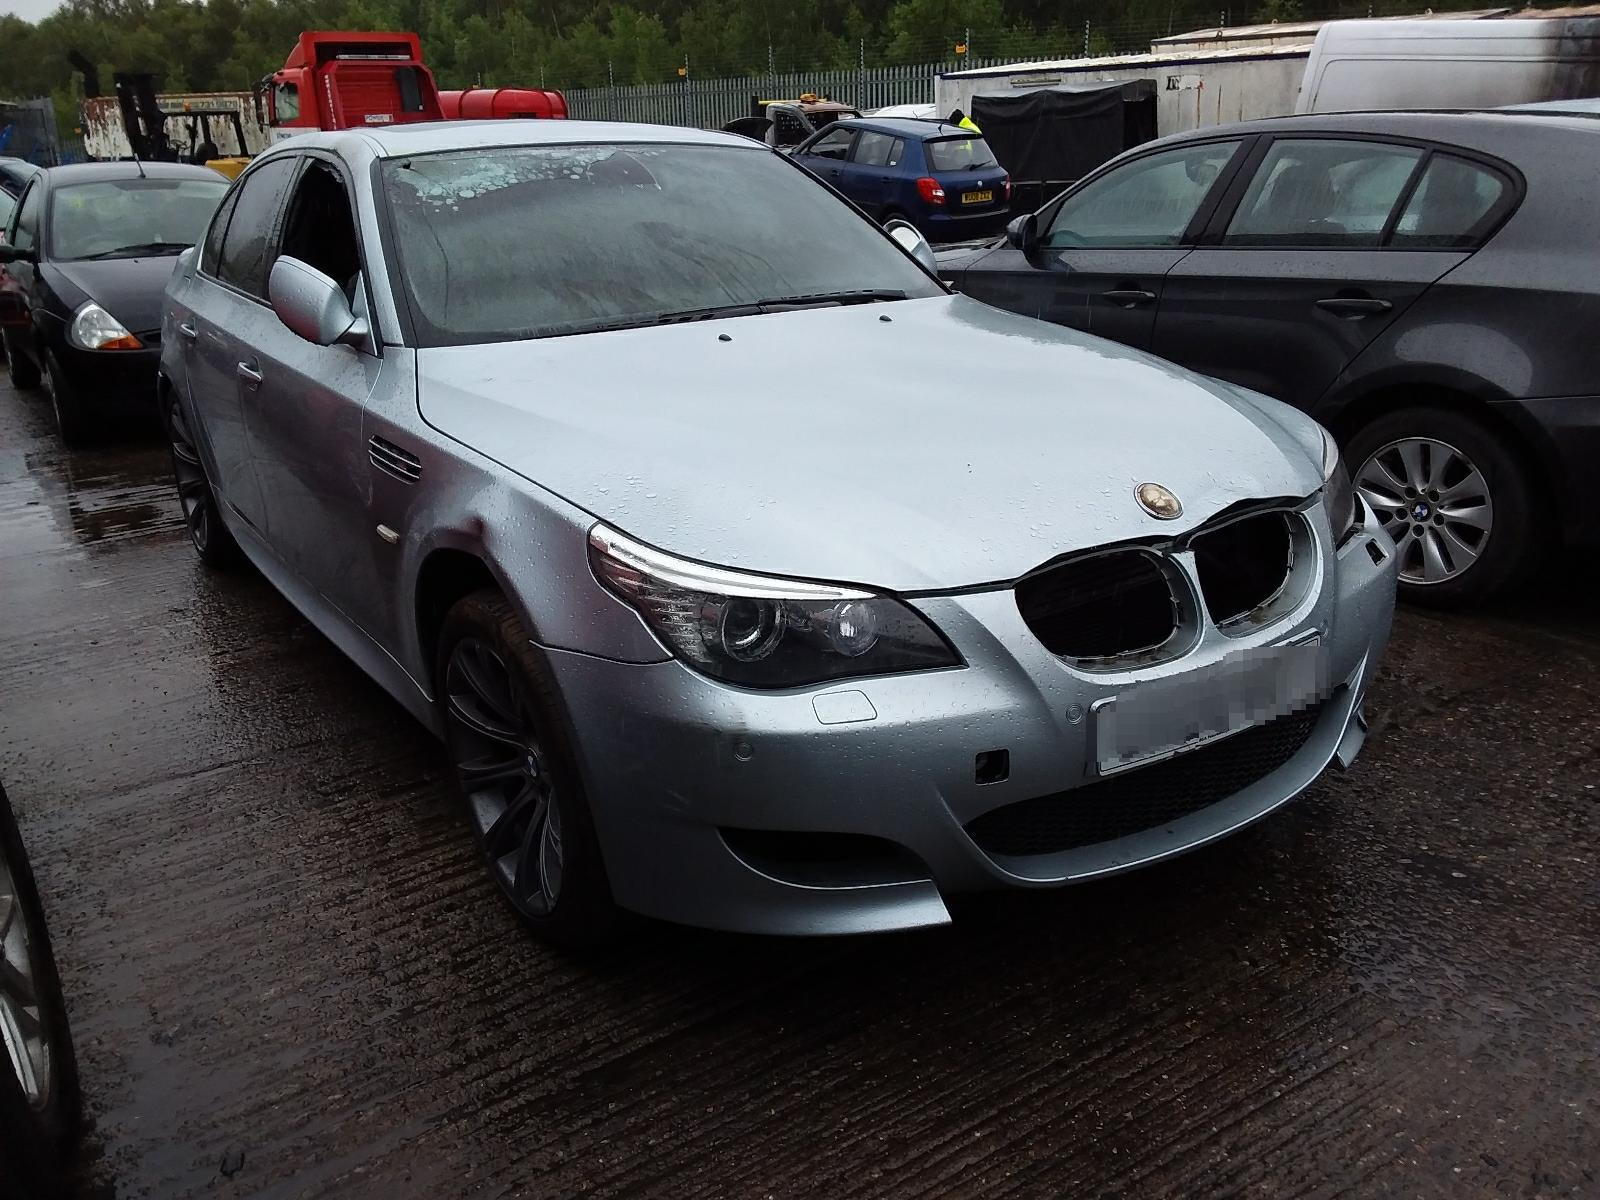 Synetiq 2008 Bmw 5 Series E60 Lci 2003 To 2010 M5 4 Door Saloon Petrol Manual Breaking For Used And Spare Parts